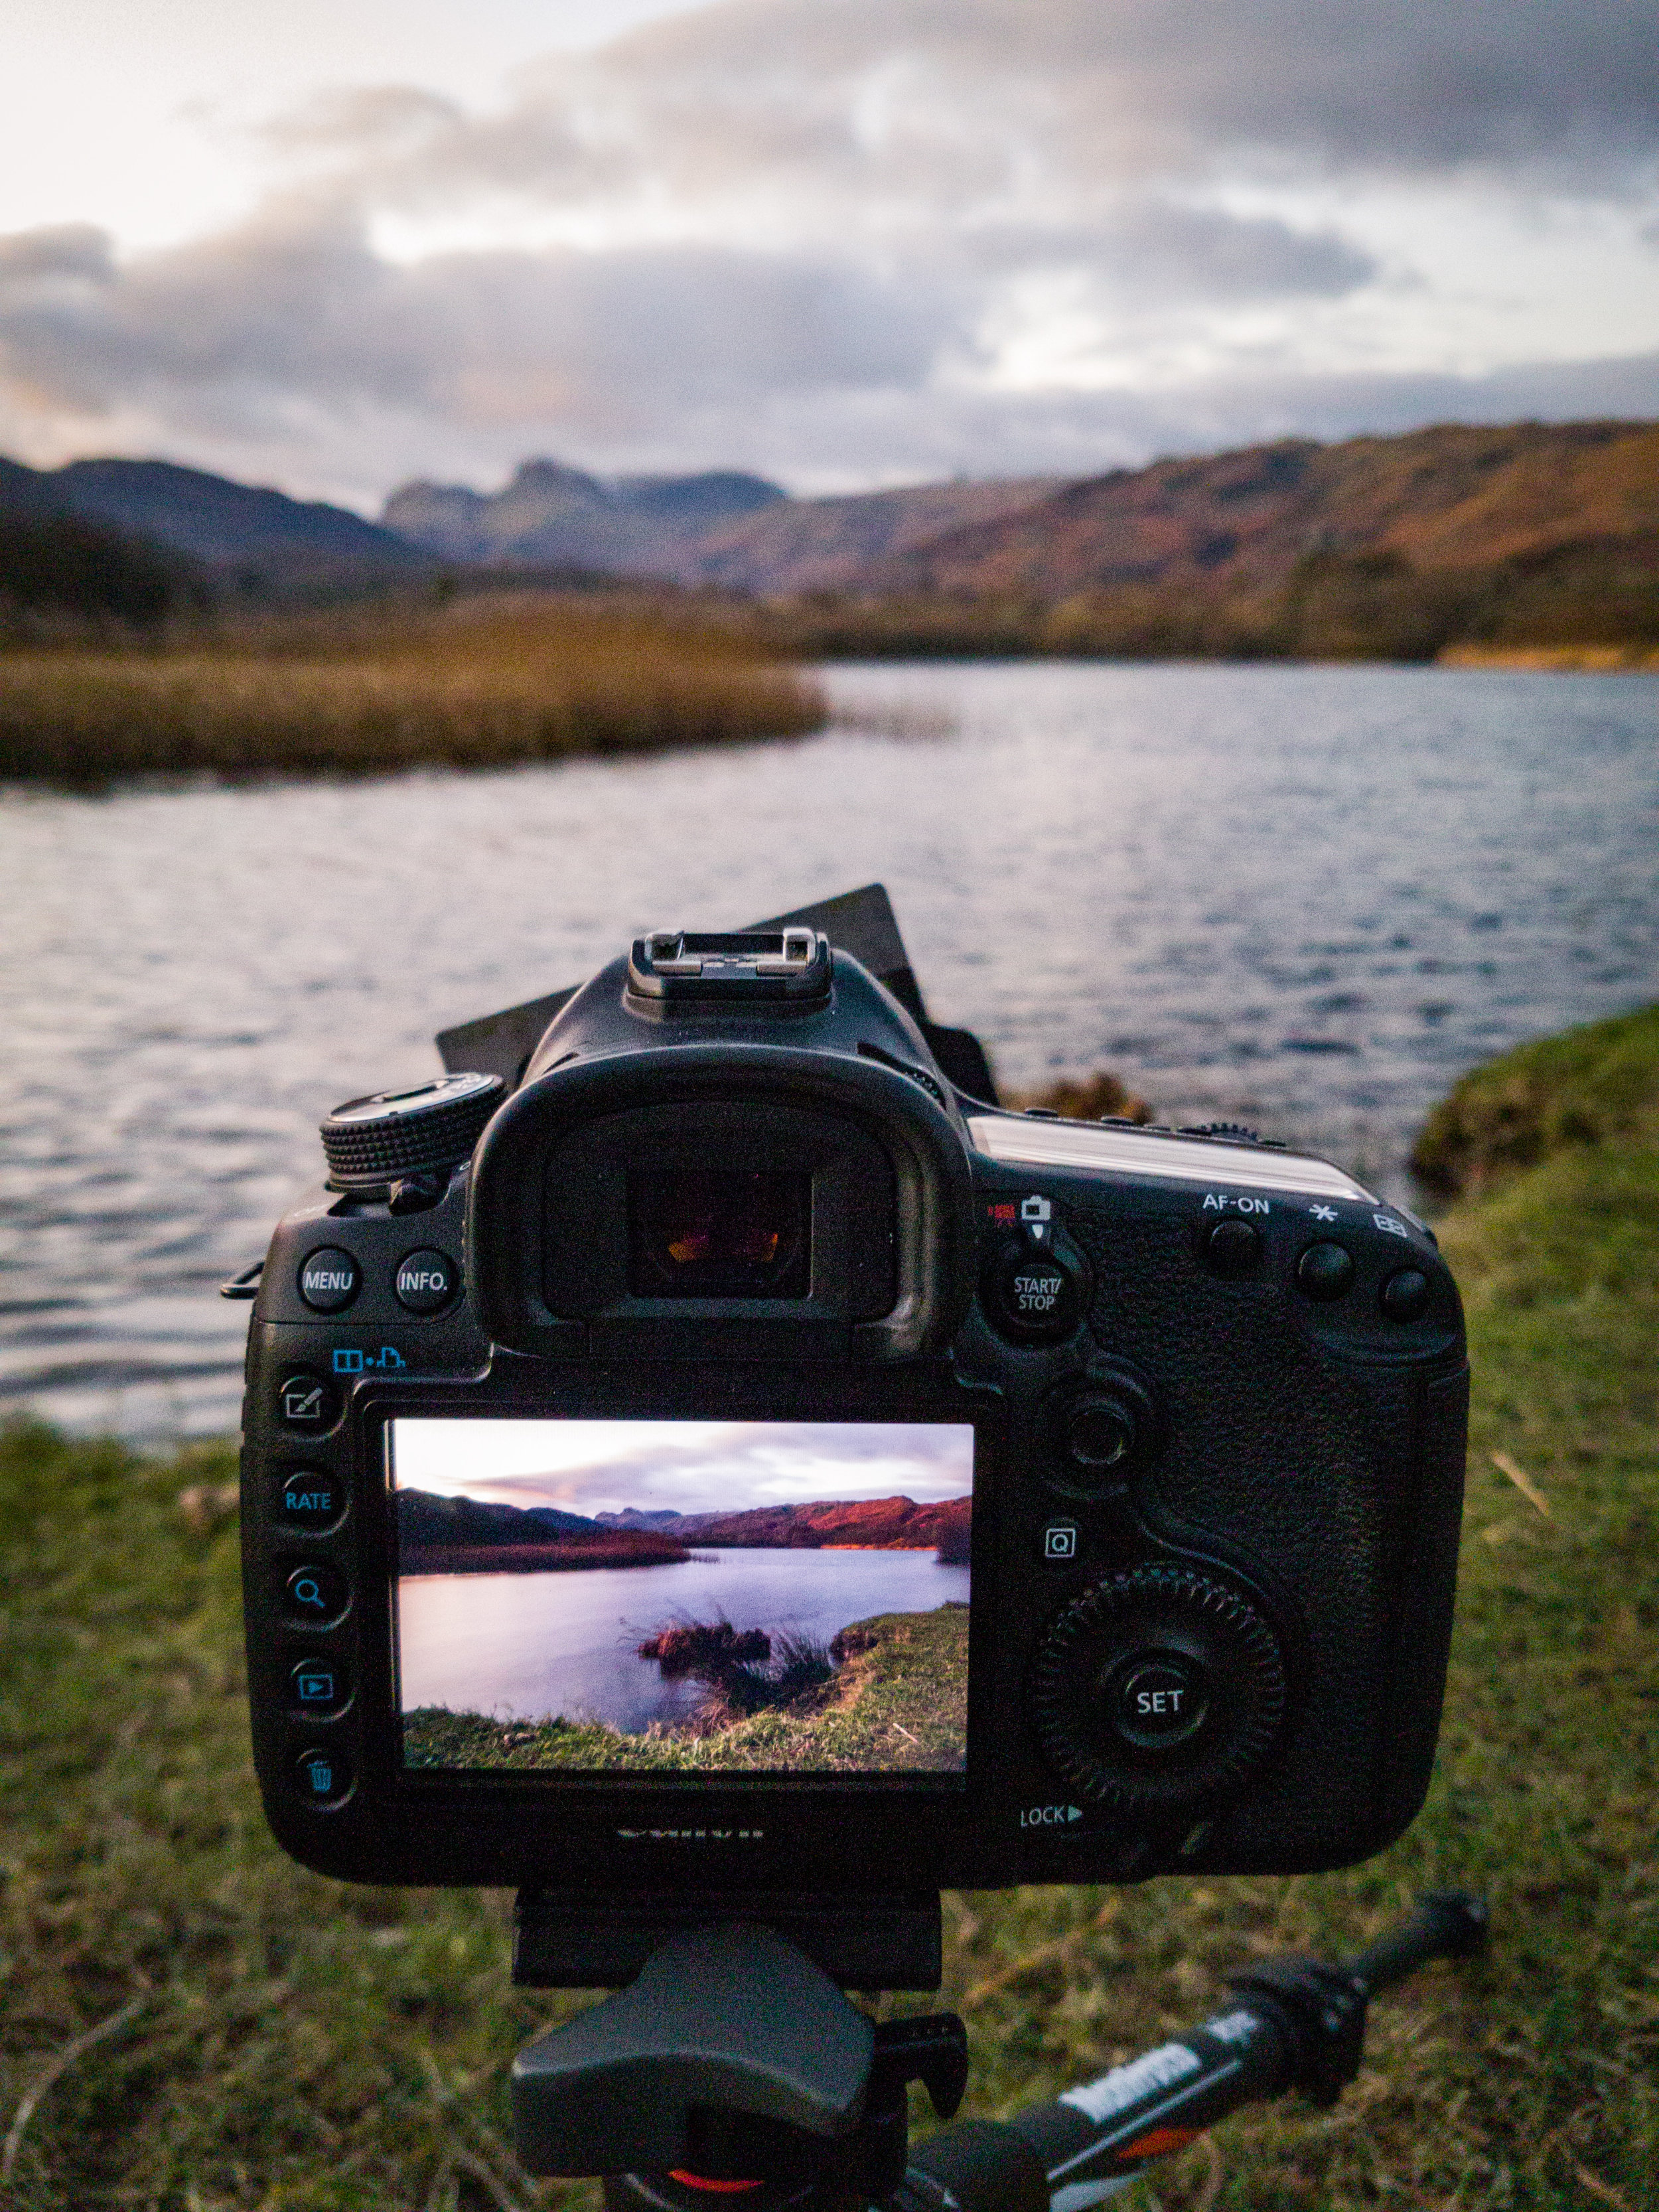 It was my family's annual trip to the Lakes at the end of November. This time I remembered my tripod!